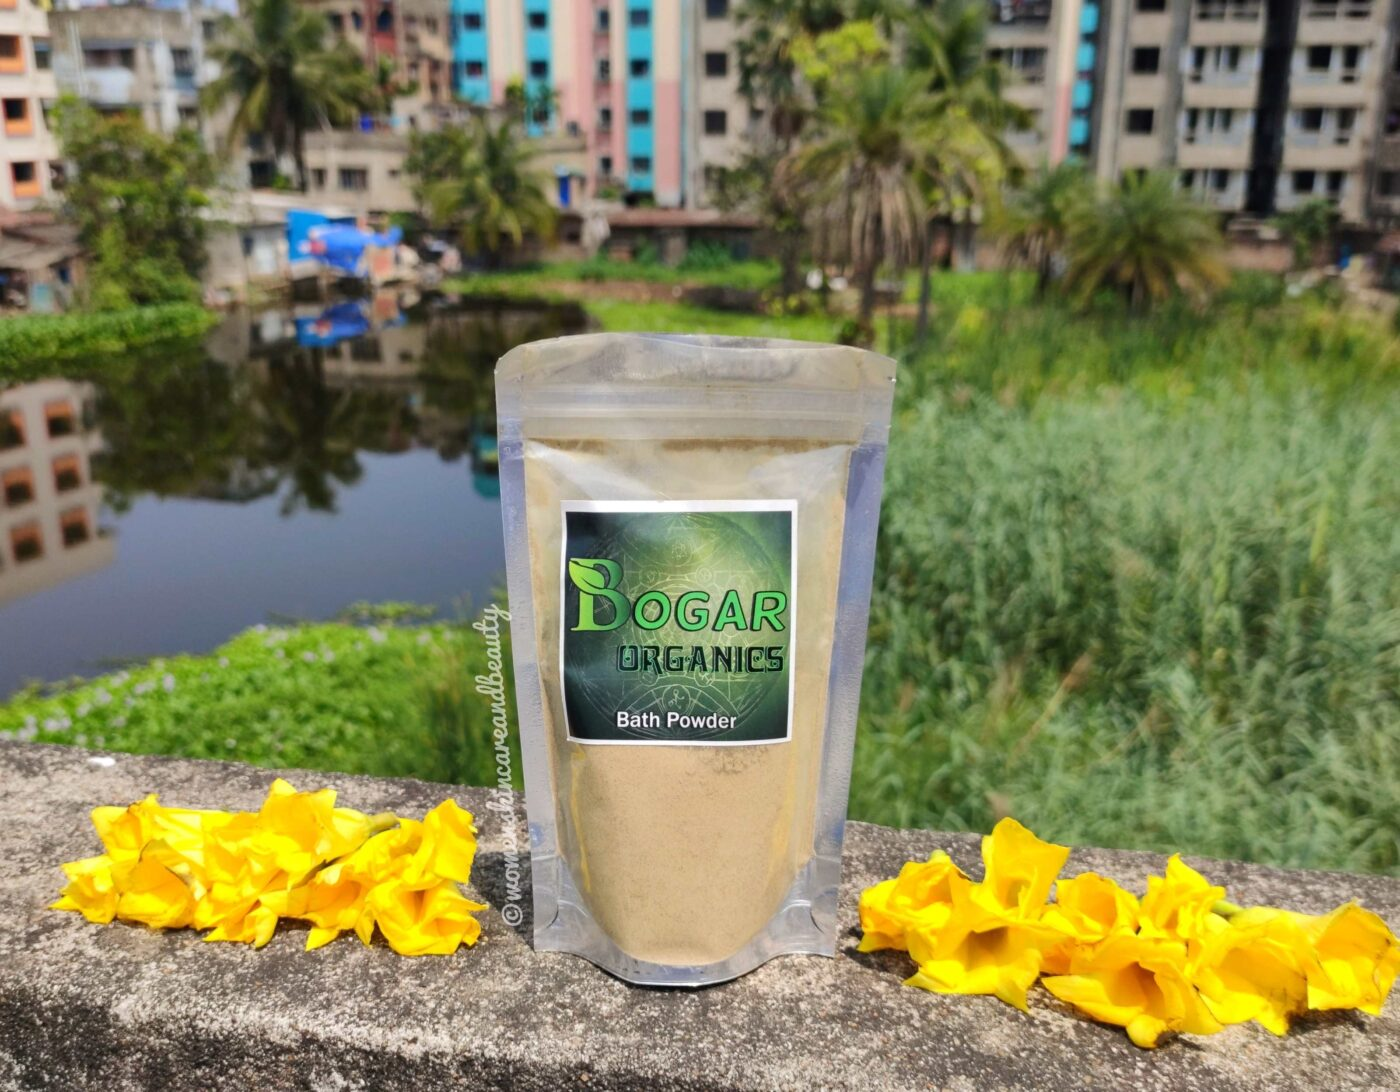 Bogar Organics Bath Powder